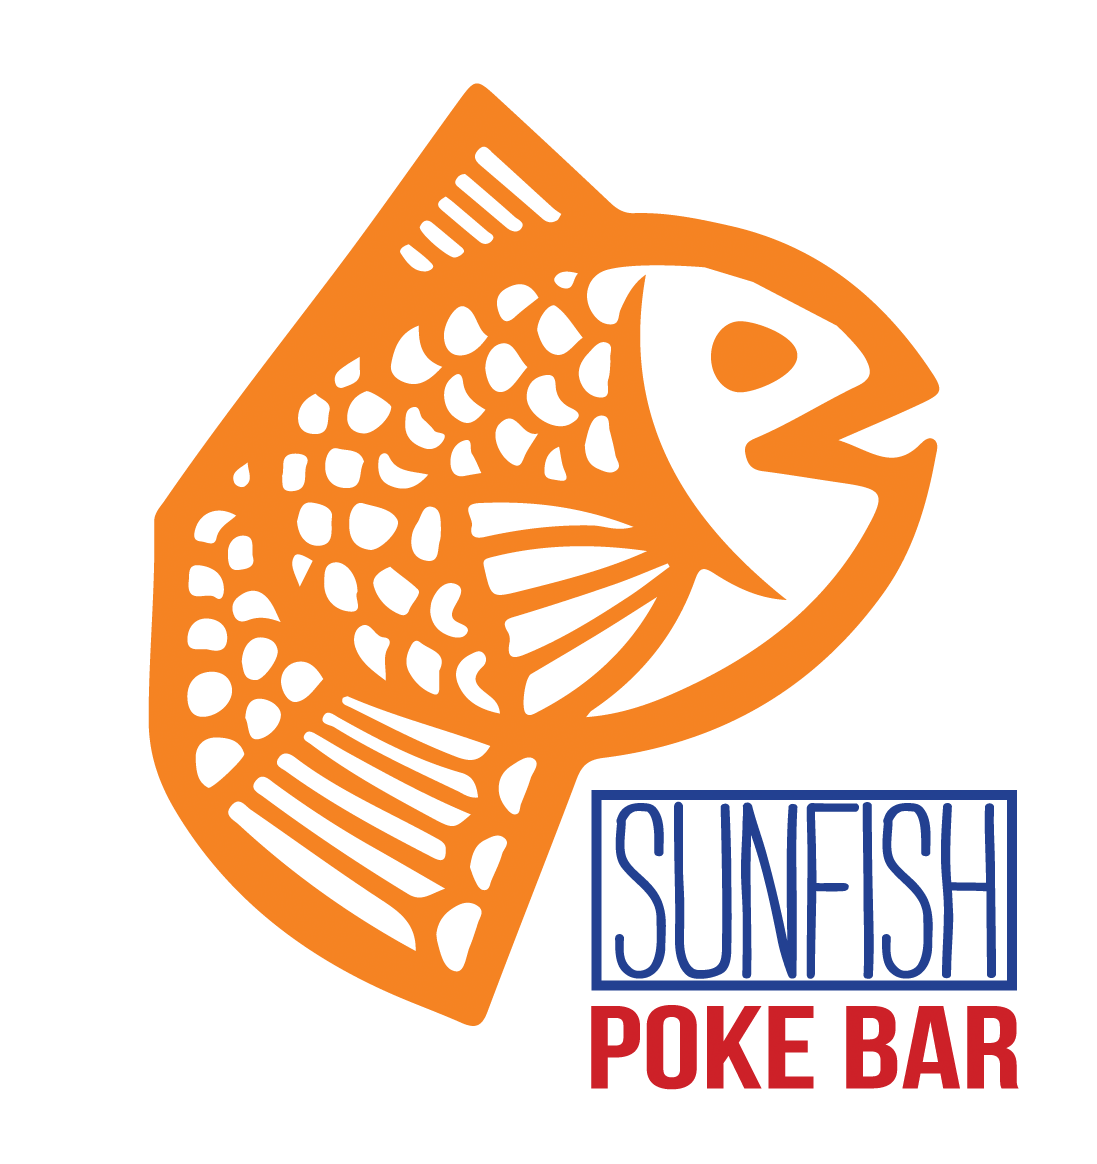 Sunfish Poke Bar